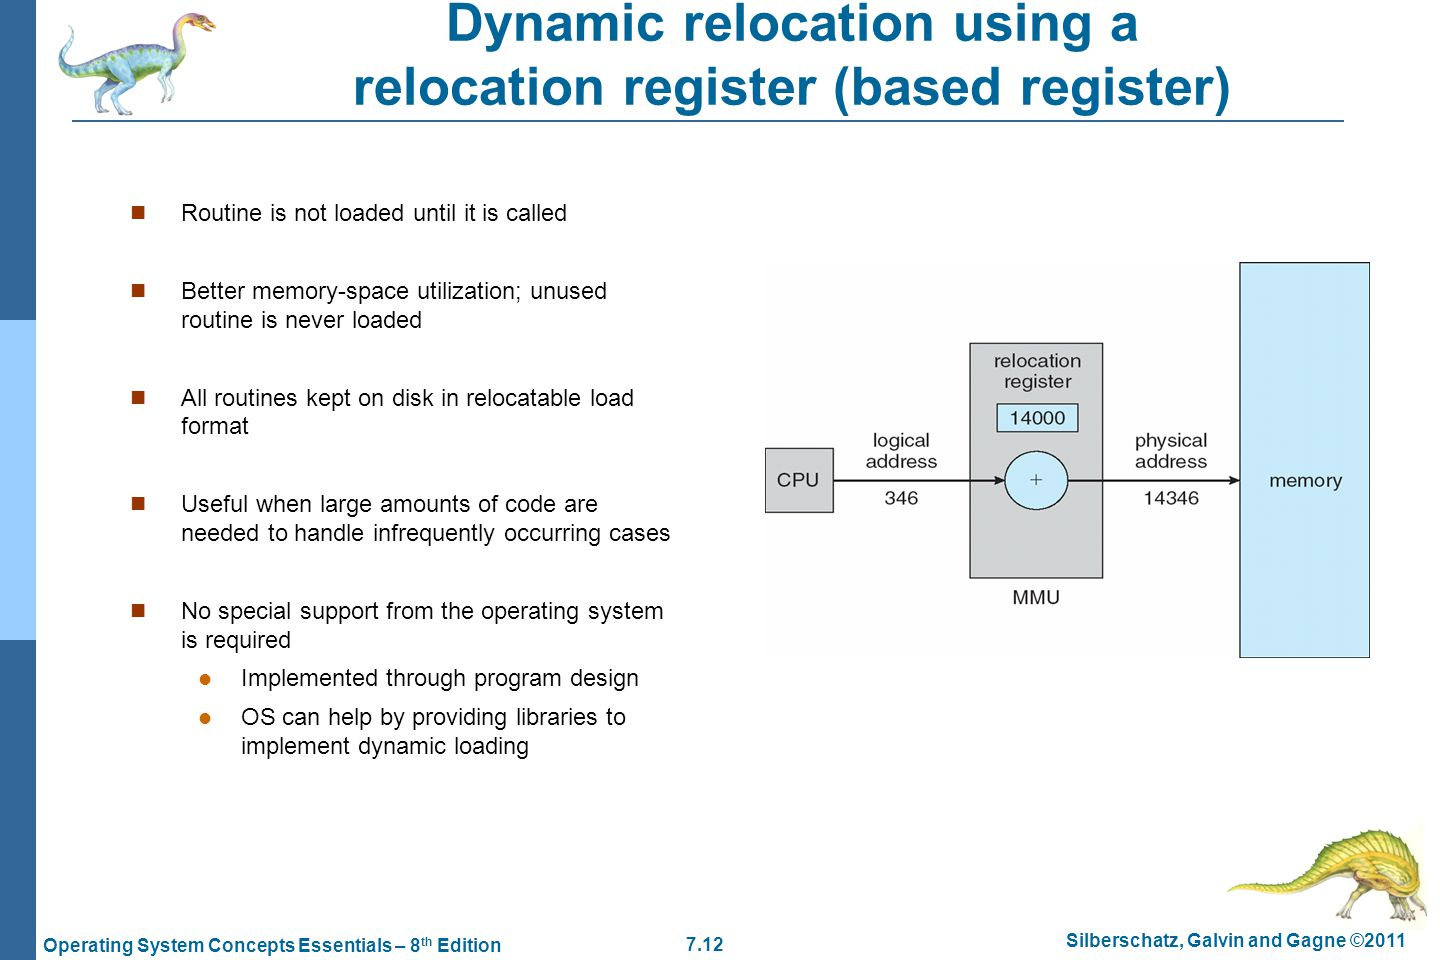 Dynamic relocation using a relocation register (based register)